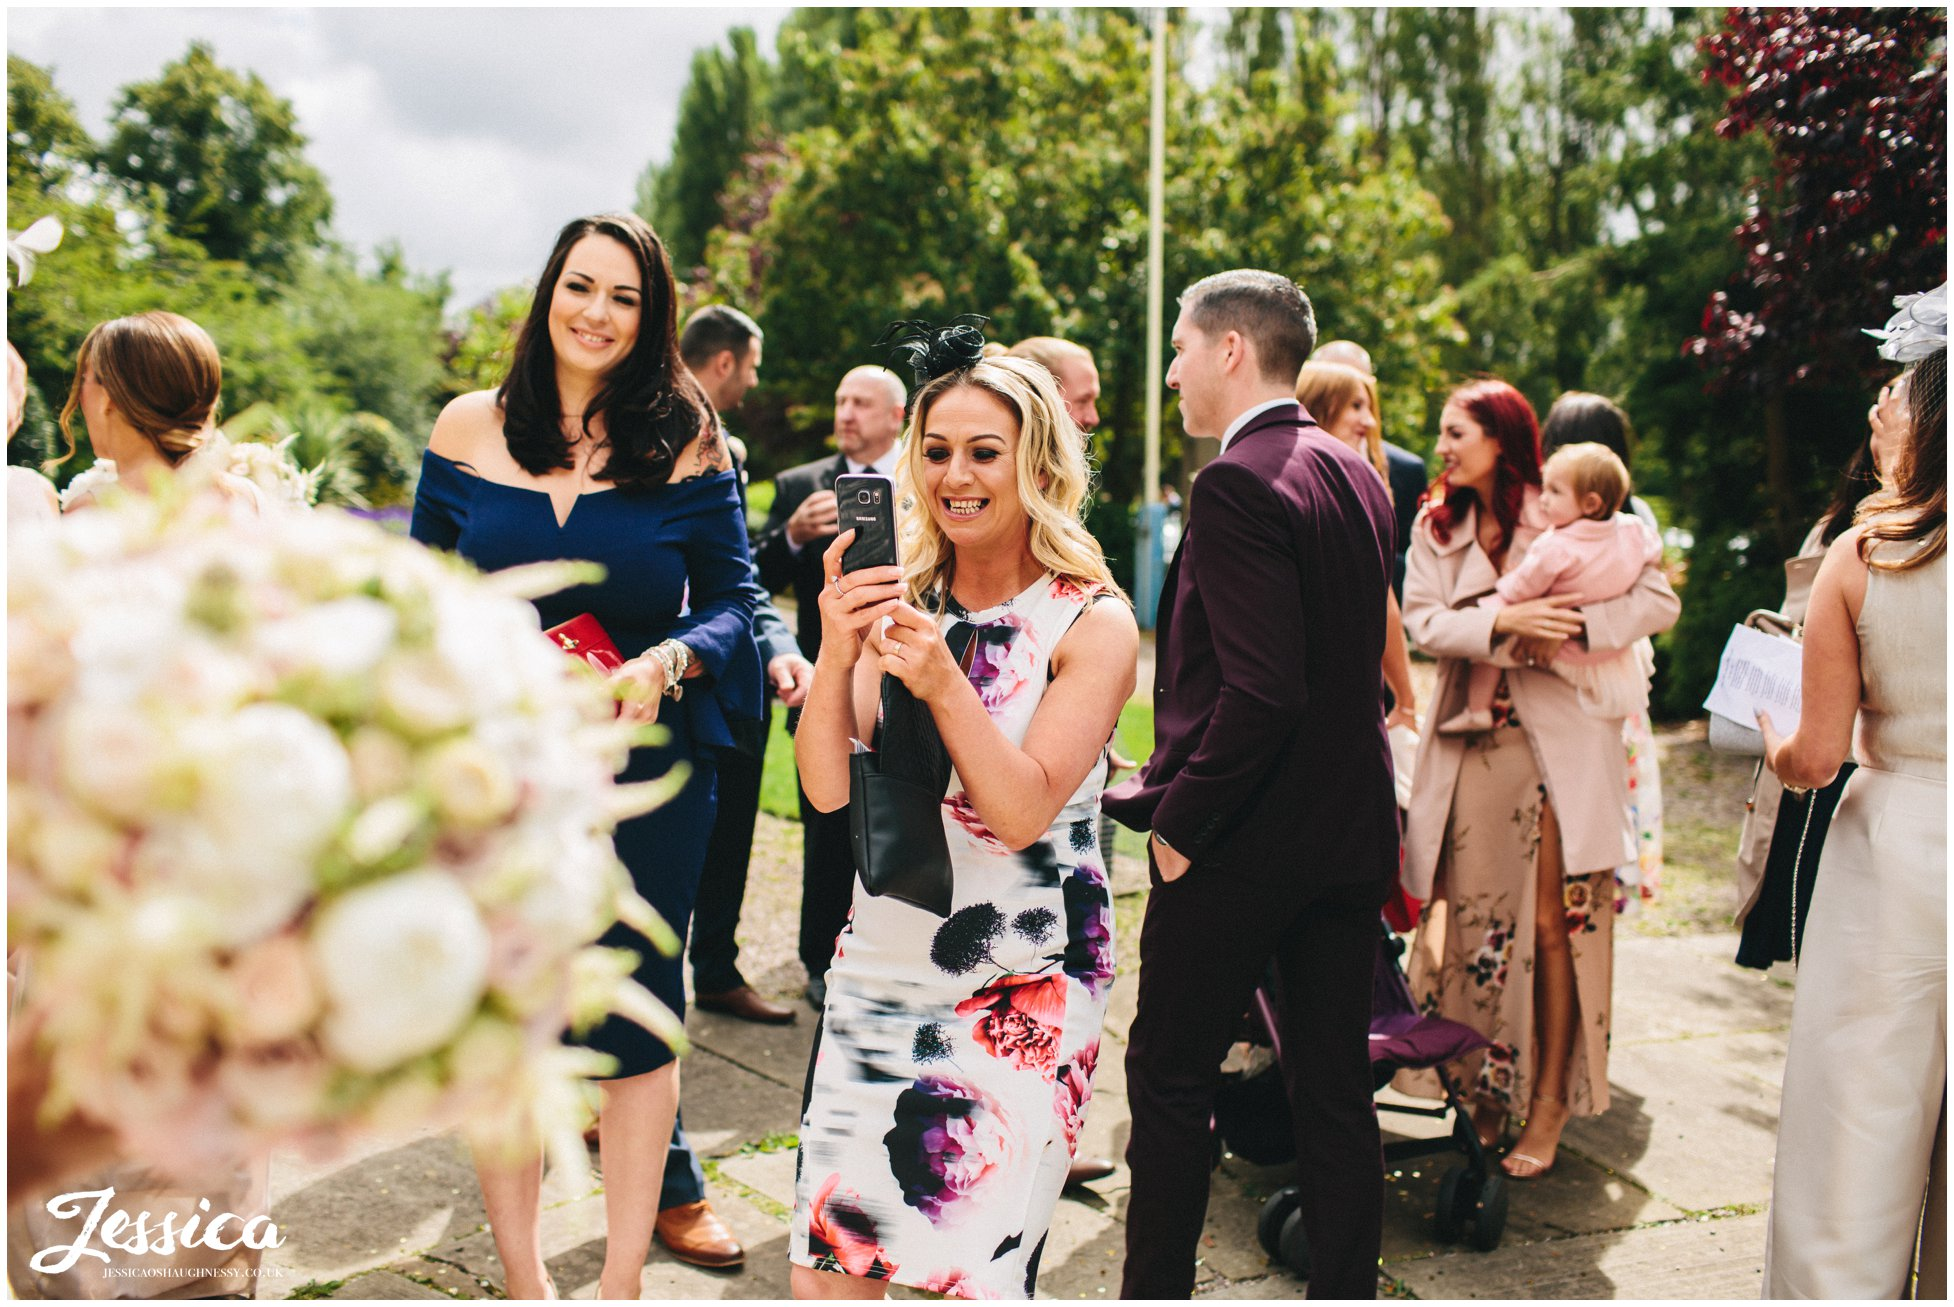 guests take photos of the bride after the wedding ceremony